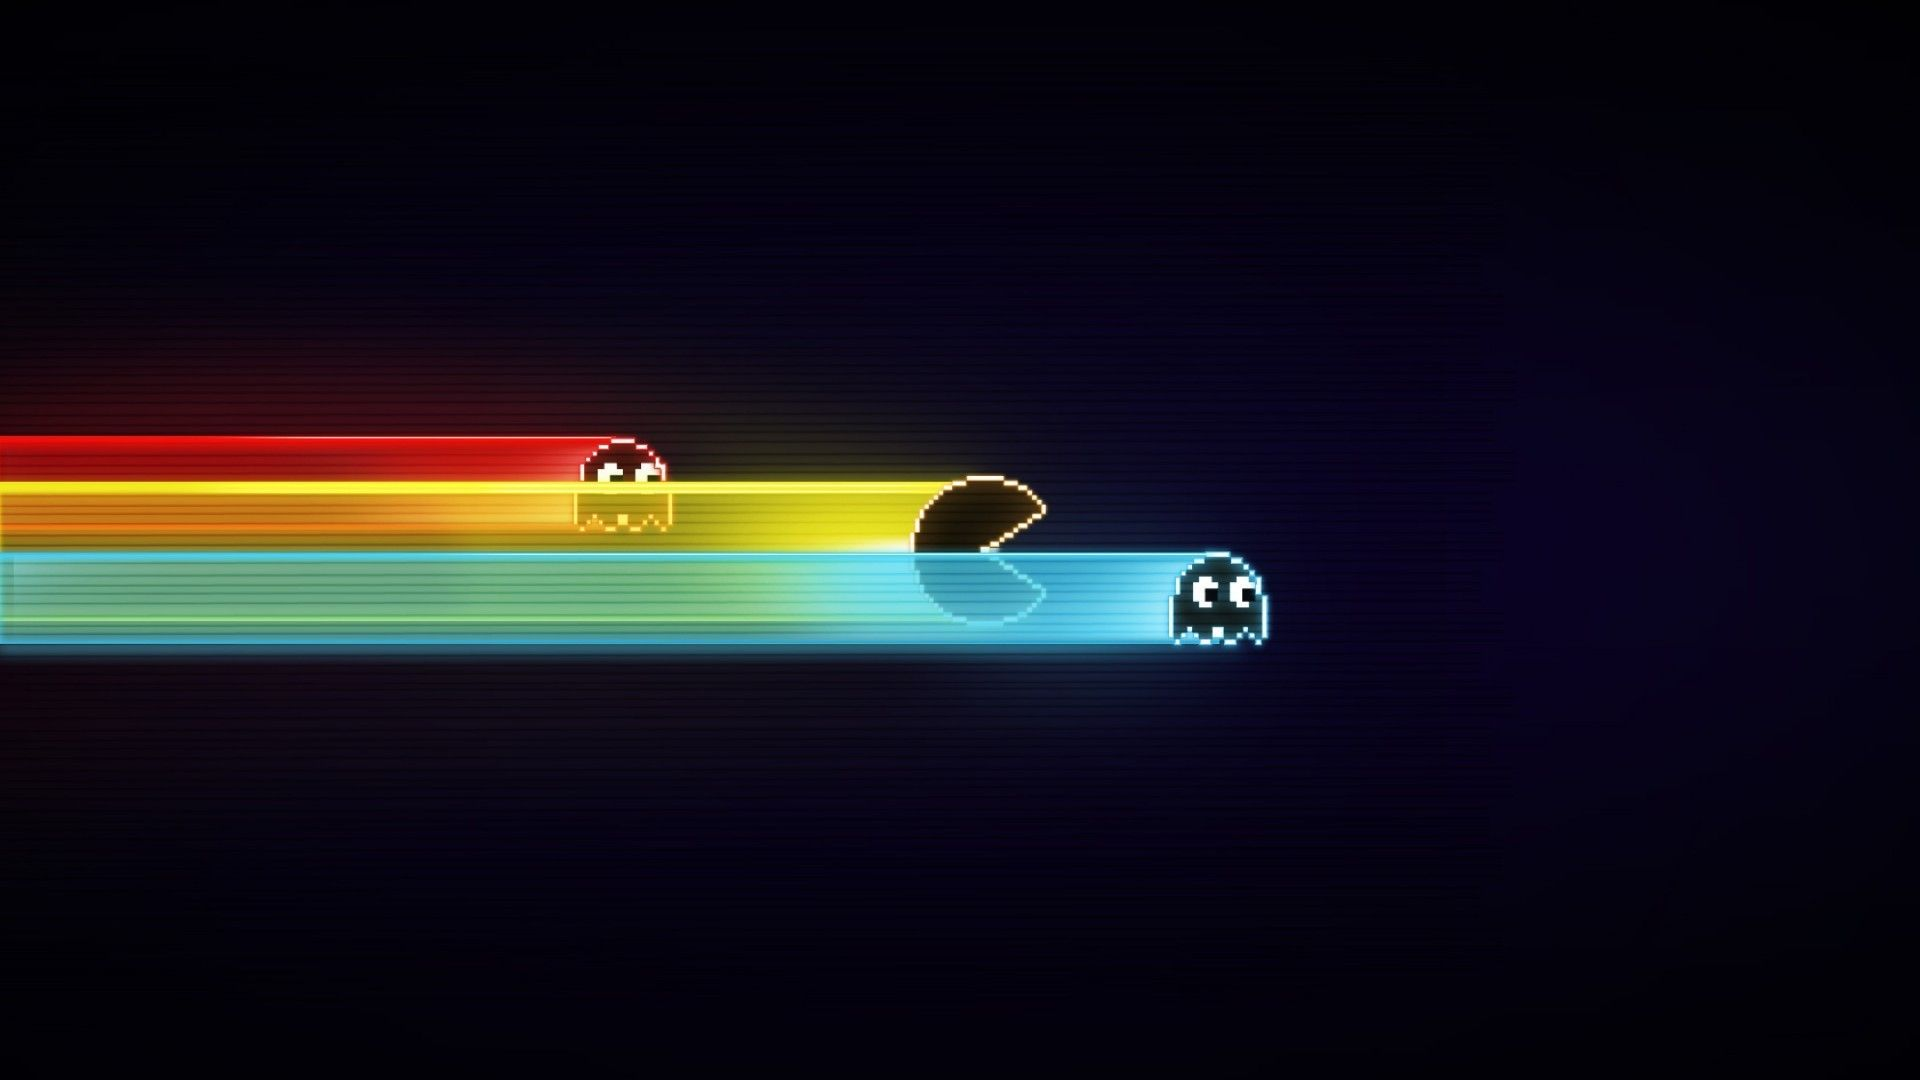 Pacman Minimalism Black Gameboy Blue Video Games Old Games Wallpaper Free Android Wallpaper Gaming Wallpapers 2048x1152 Wallpapers